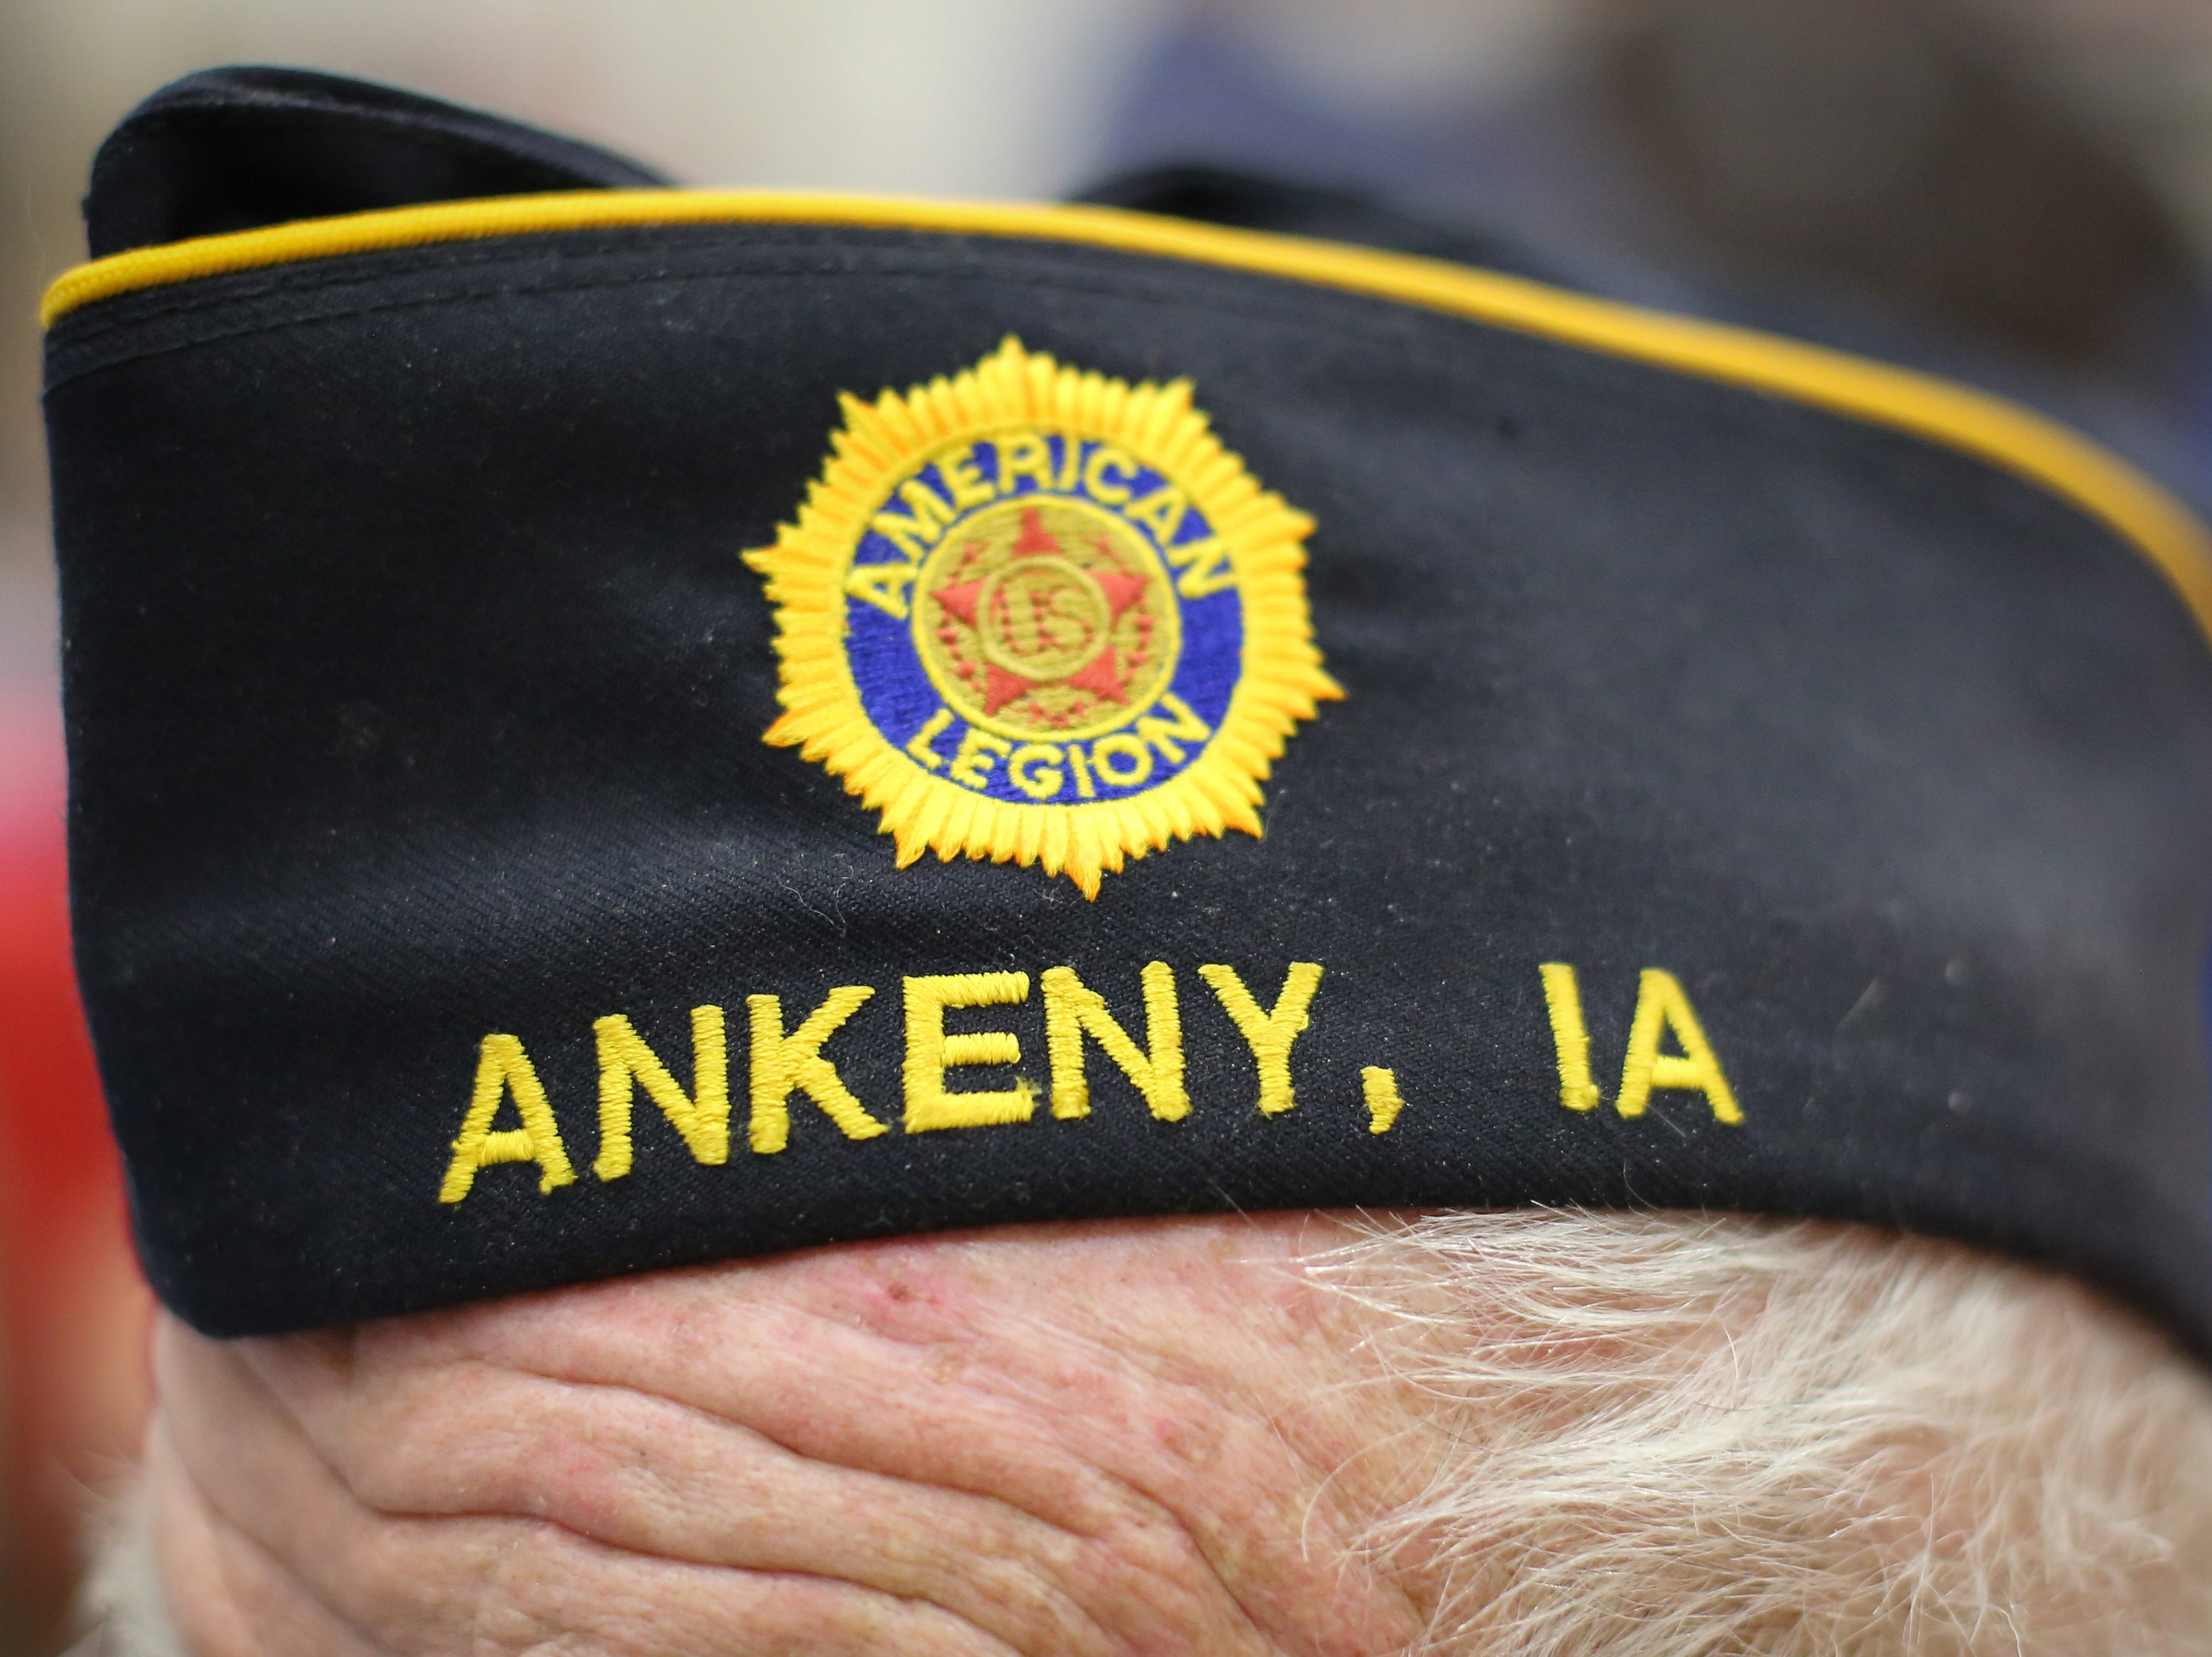 A detailed view of Gerald Ballard's hat, a lifelong Ankeny resident who served in the Coast Guard and is a WWII veteran, during Veterans Day Breakfast at Northview Middle School on Wednesday, Nov. 14, 2018 in Ankeny, Iowa.